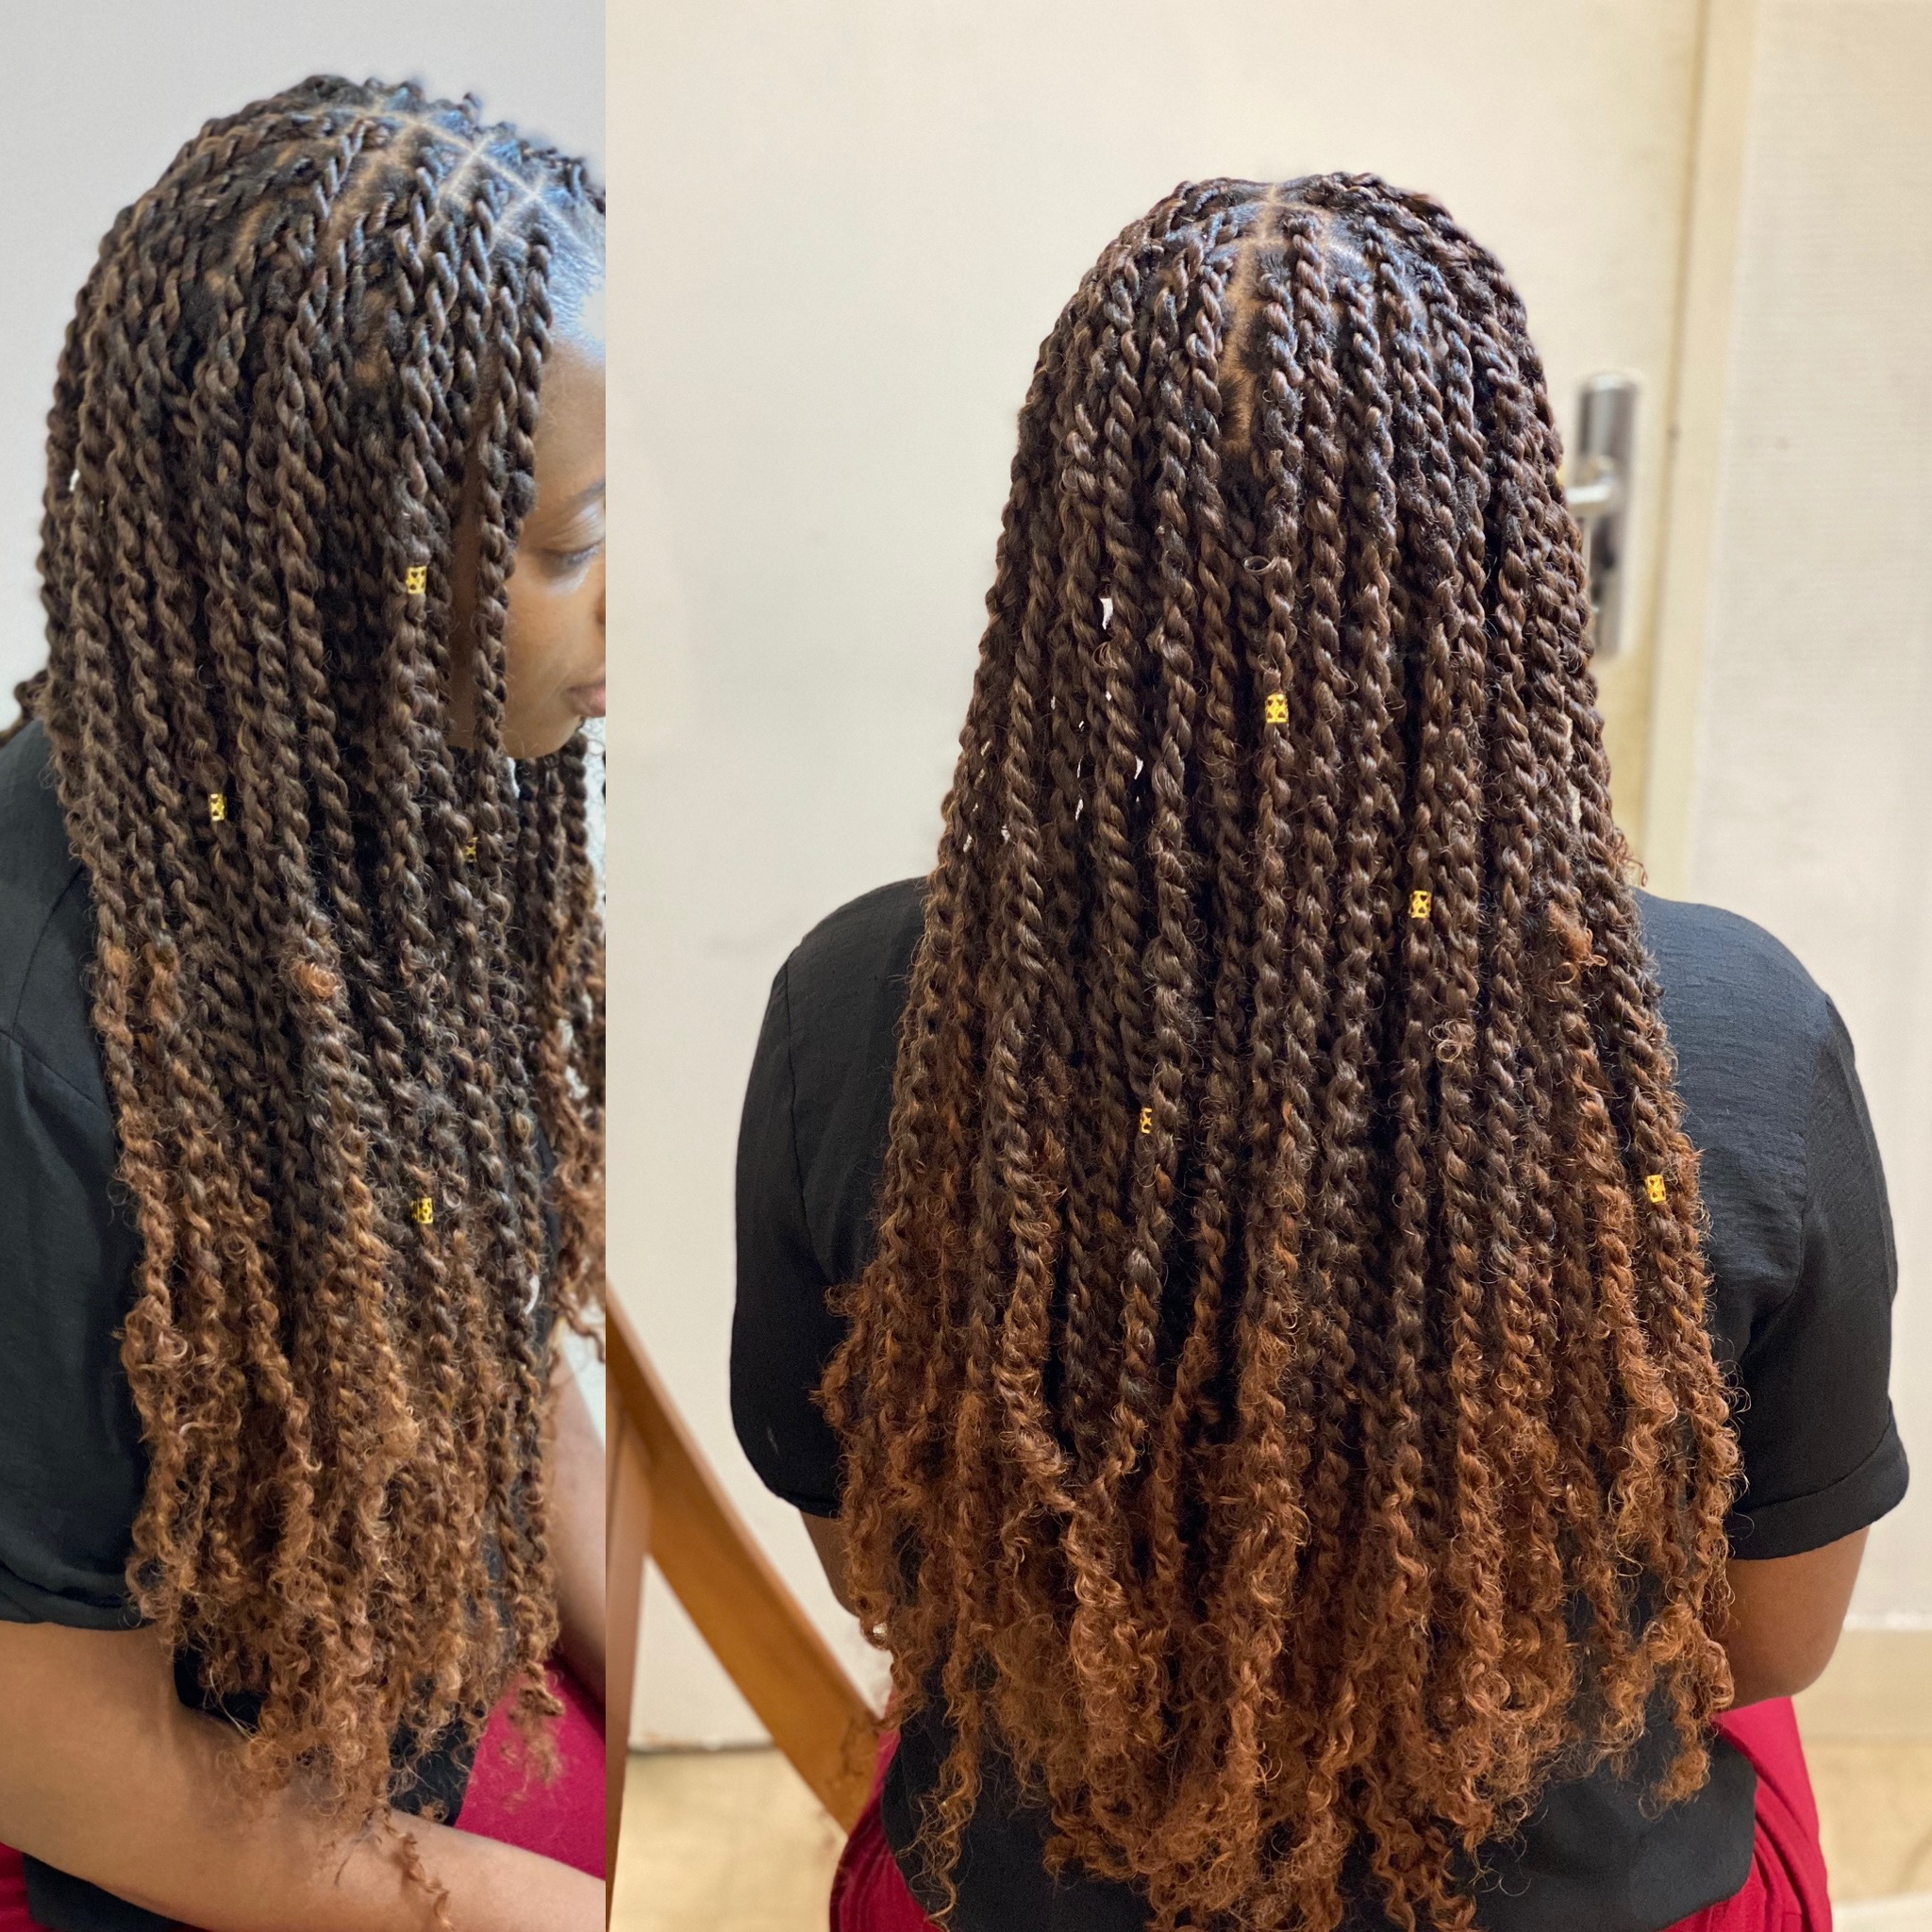 salon de coiffure afro tresse tresses box braids crochet braids vanilles tissages paris 75 77 78 91 92 93 94 95 JLBIDQUA